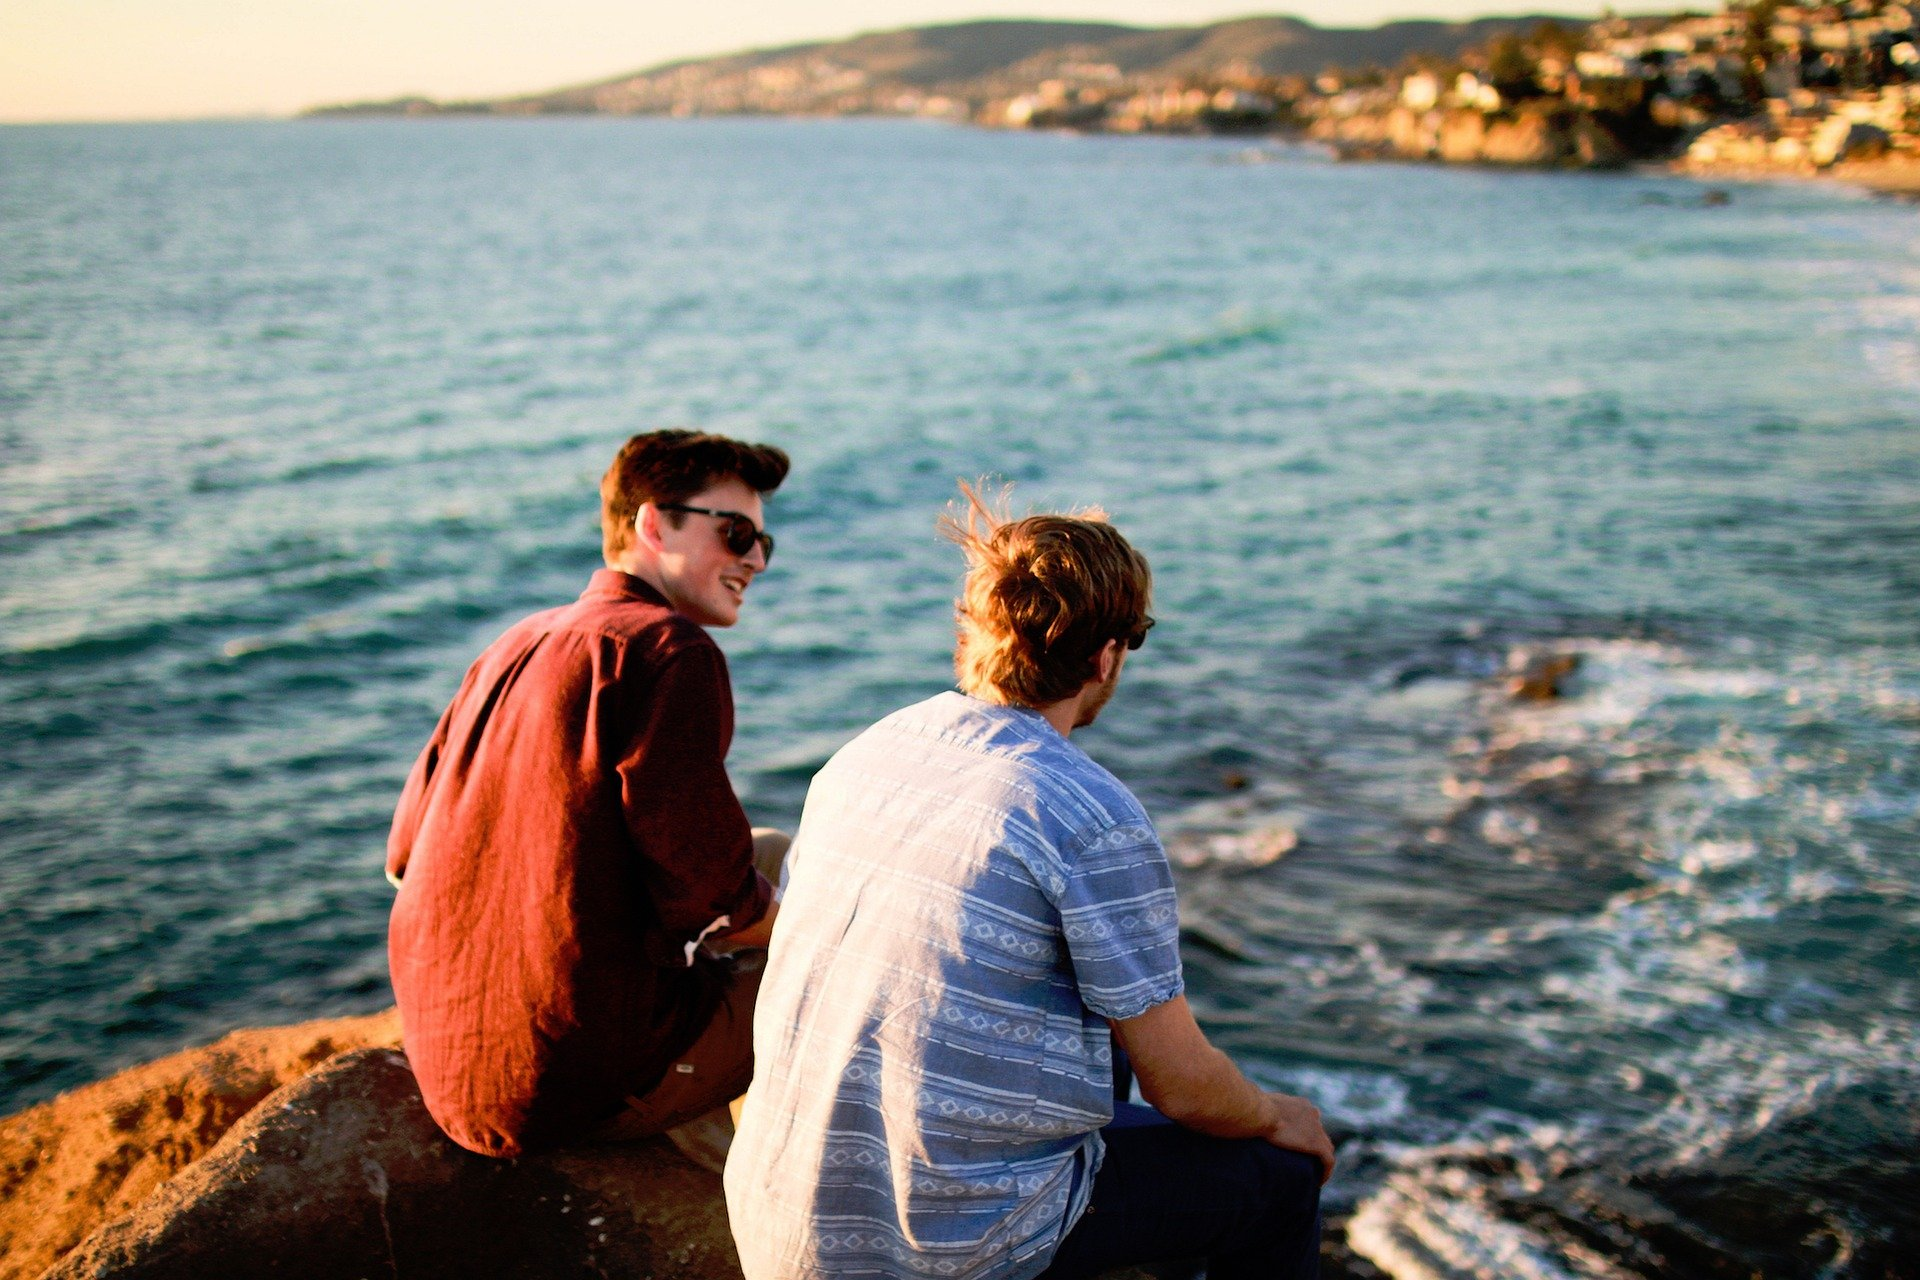 Pictured - Two men conversing while sitting on rocks near the ocean | Source: Pixabay